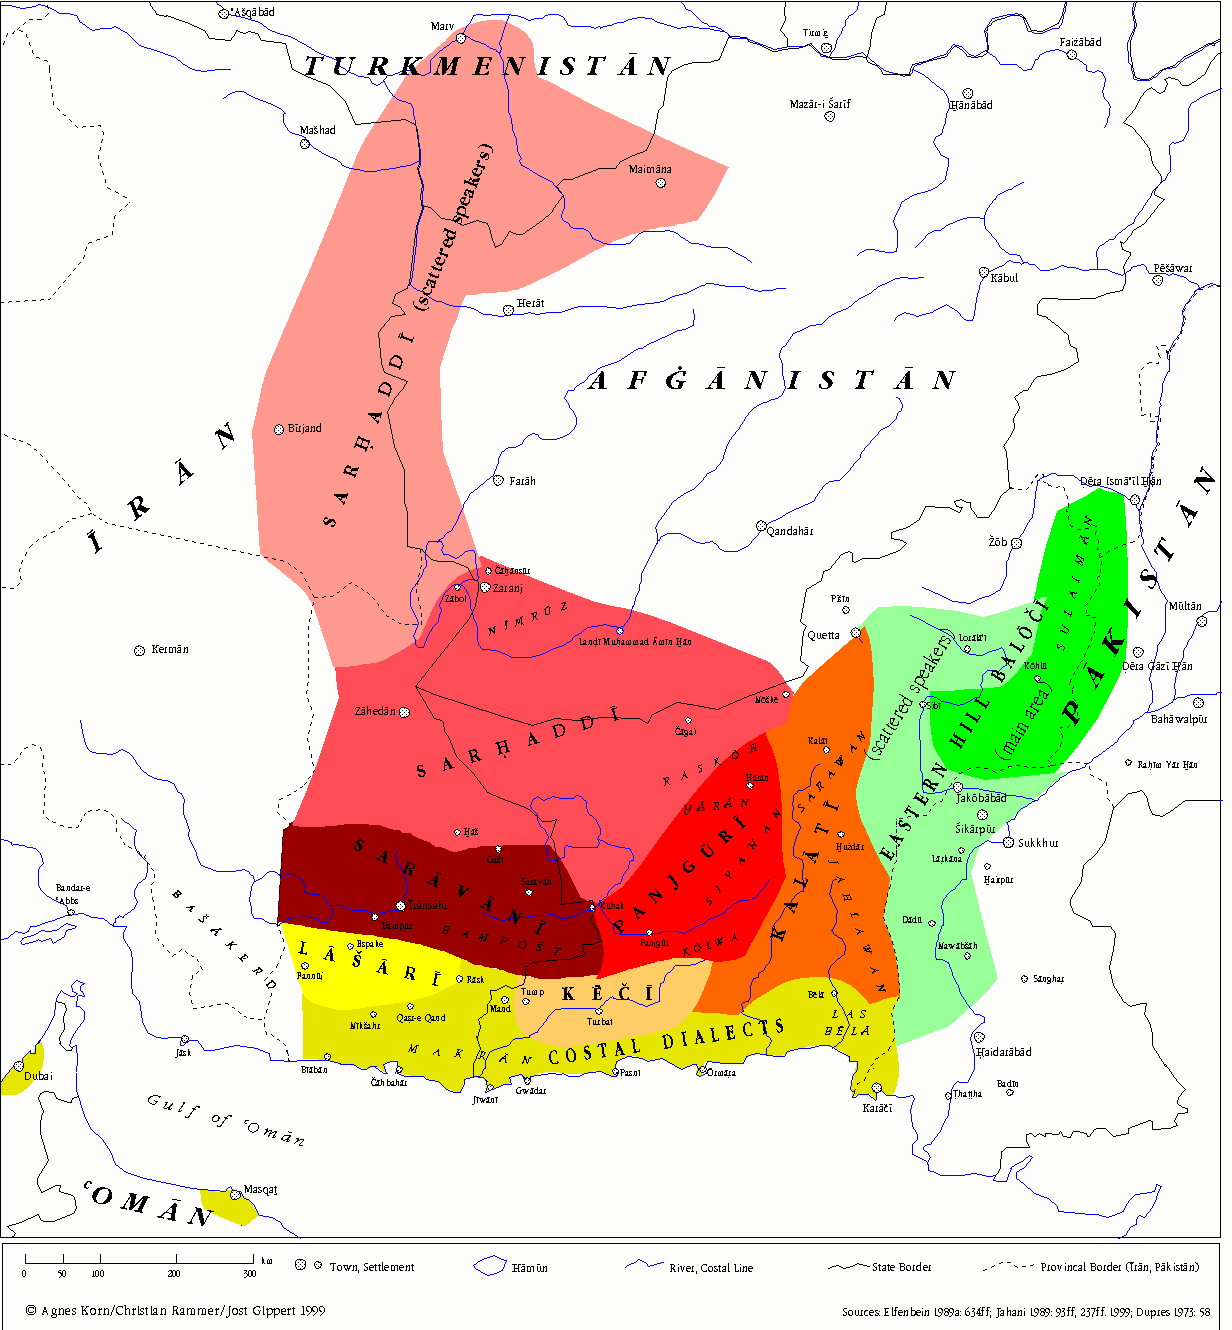 Balochi Dialects